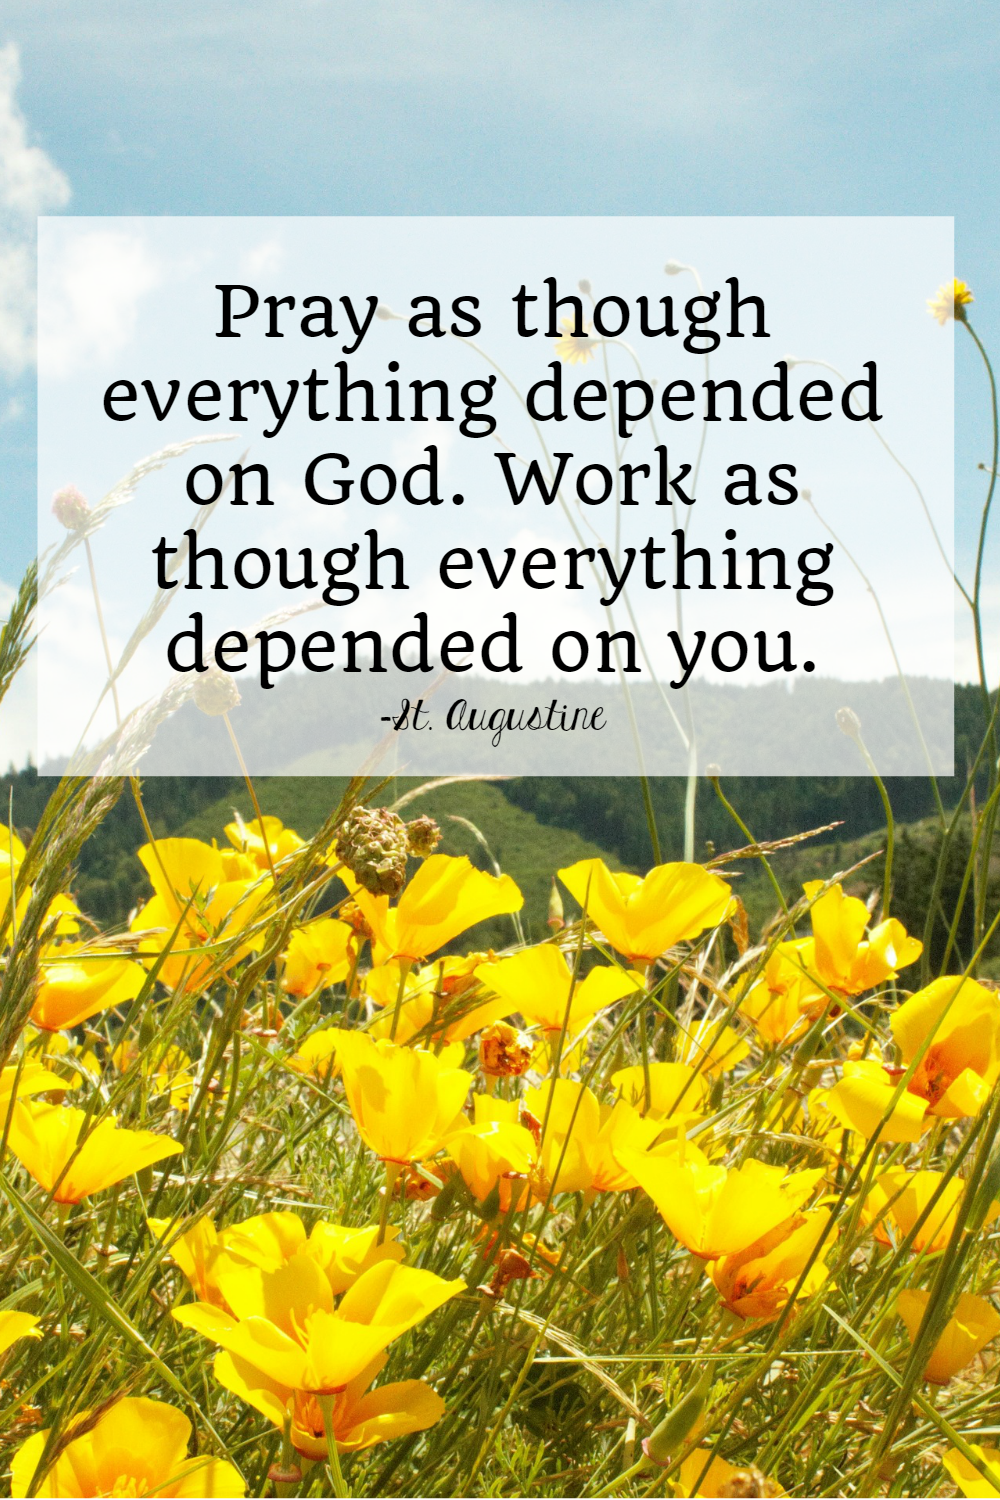 Just For Today Quotes Saints Quotes Ora Et Labora Prayer And Work • The Littlest Way